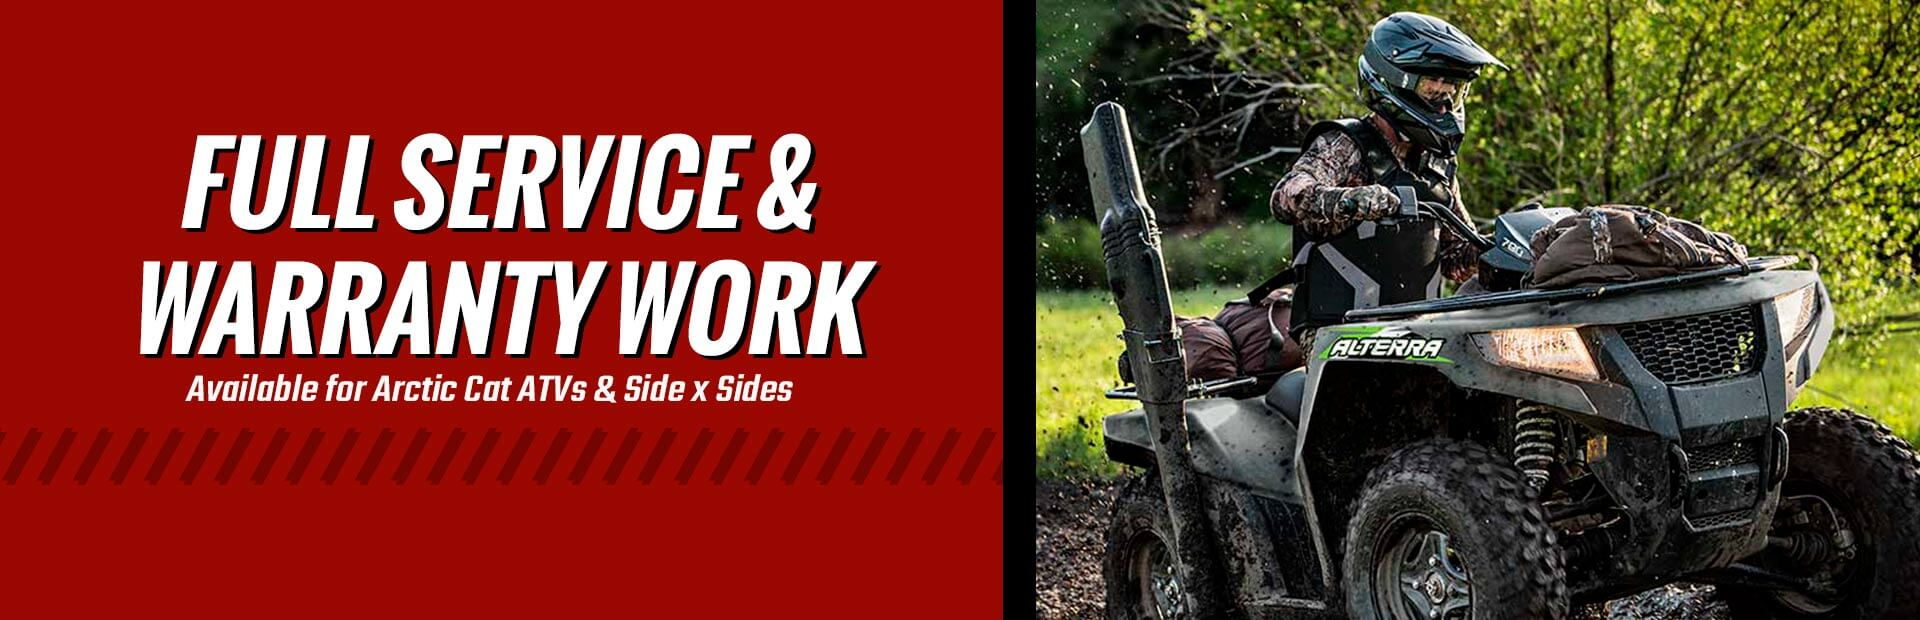 We're offering full service & warranty work on Artic Cat ATVs and Side x Sides: Click here to view t